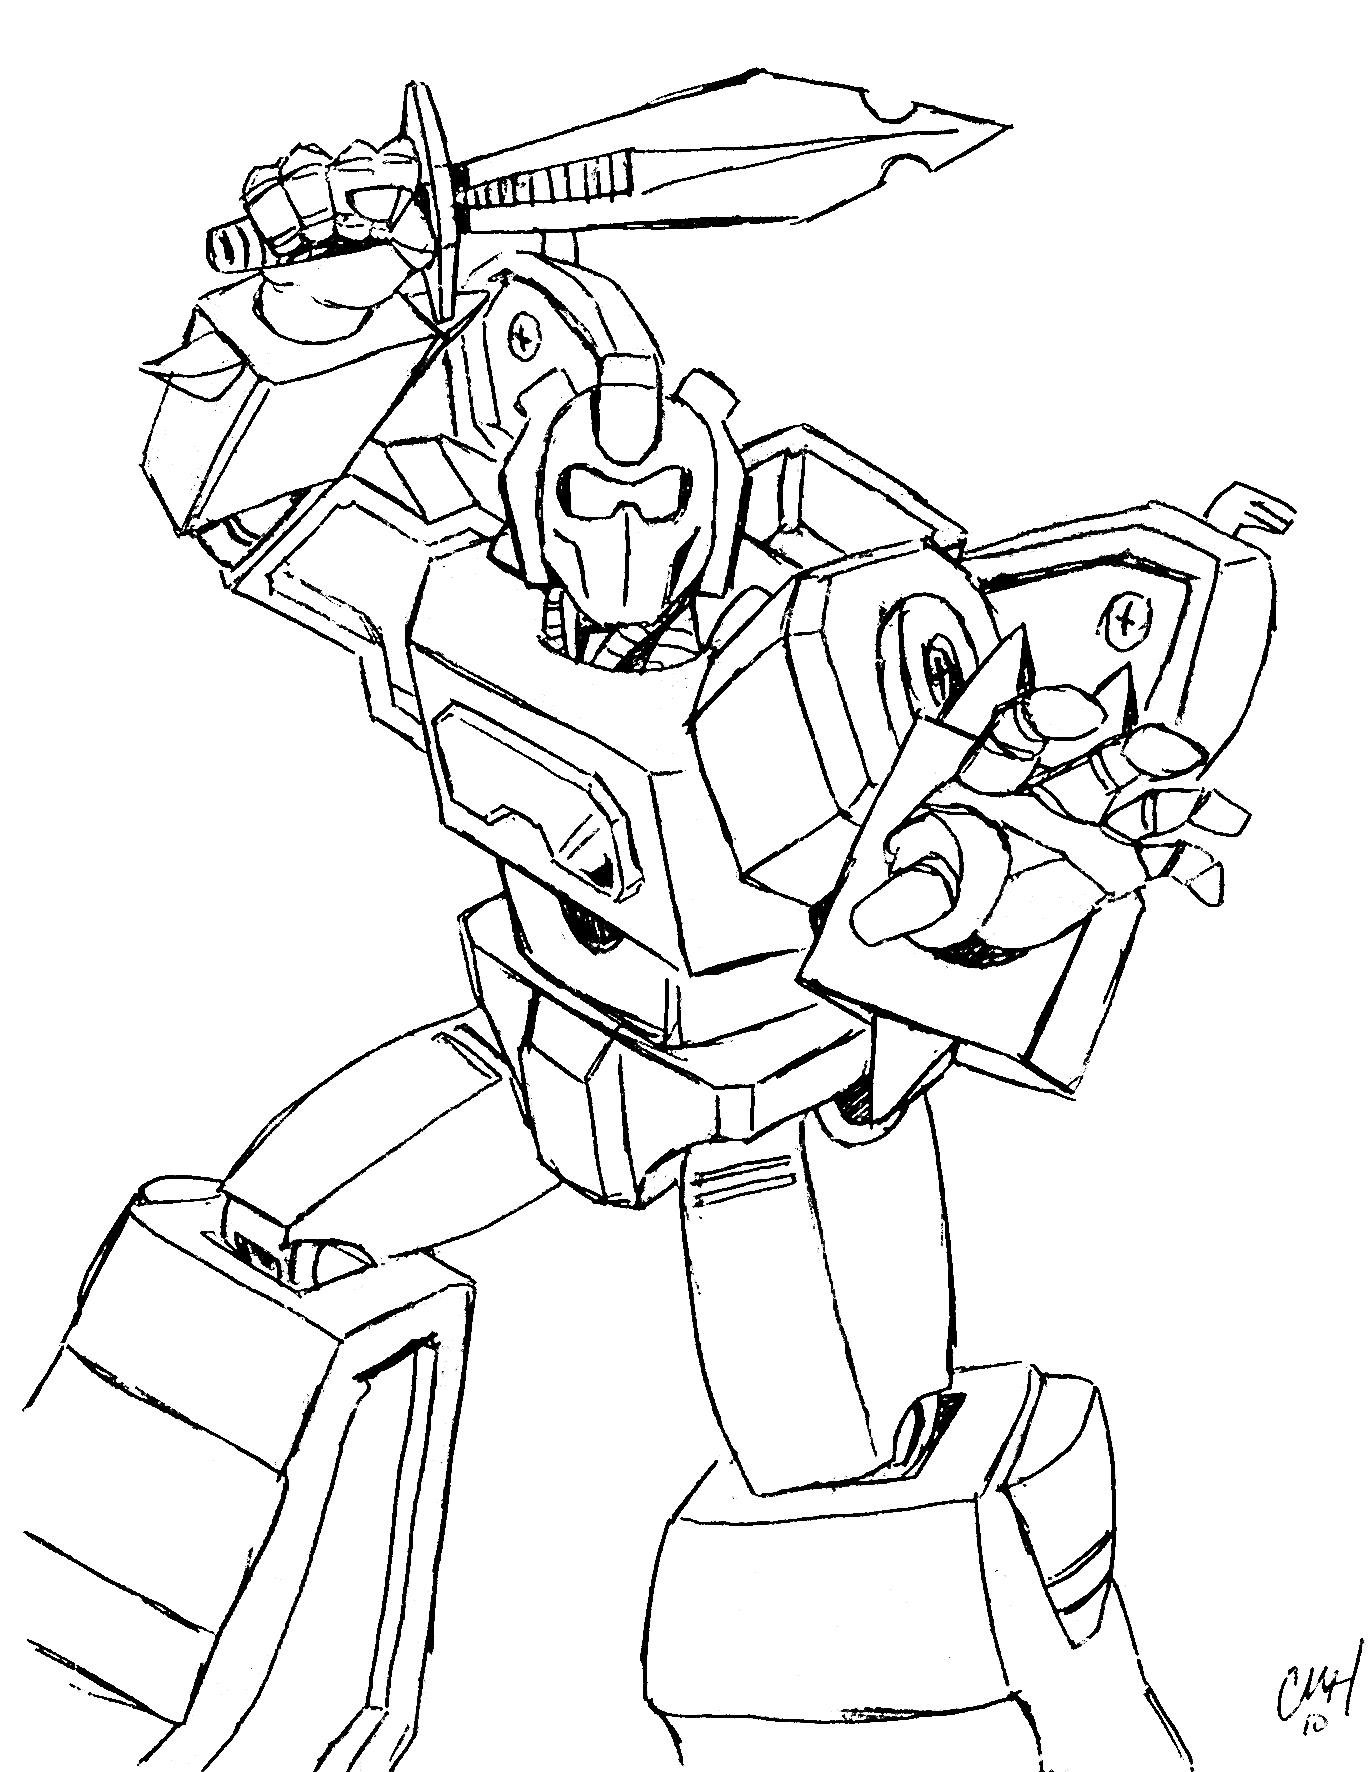 transformers coloring sheets transformers coloring pages getcoloringpagescom coloring sheets transformers